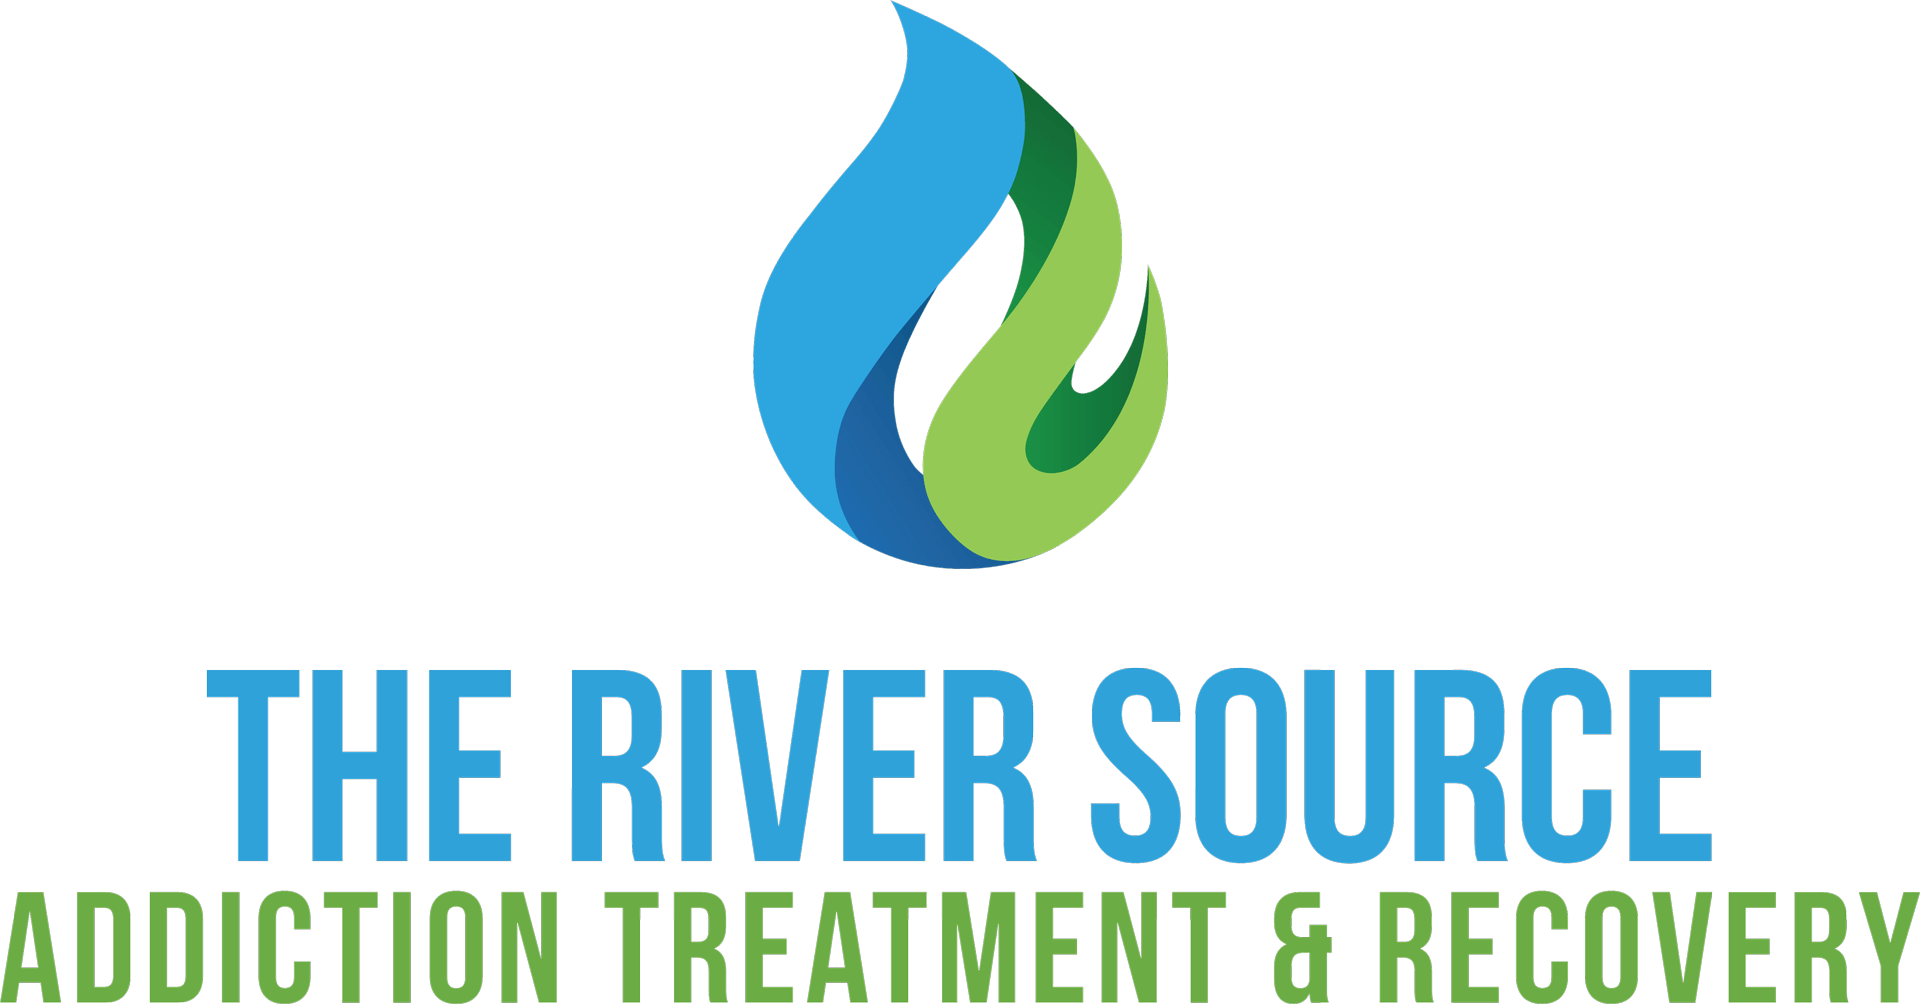 The River Source